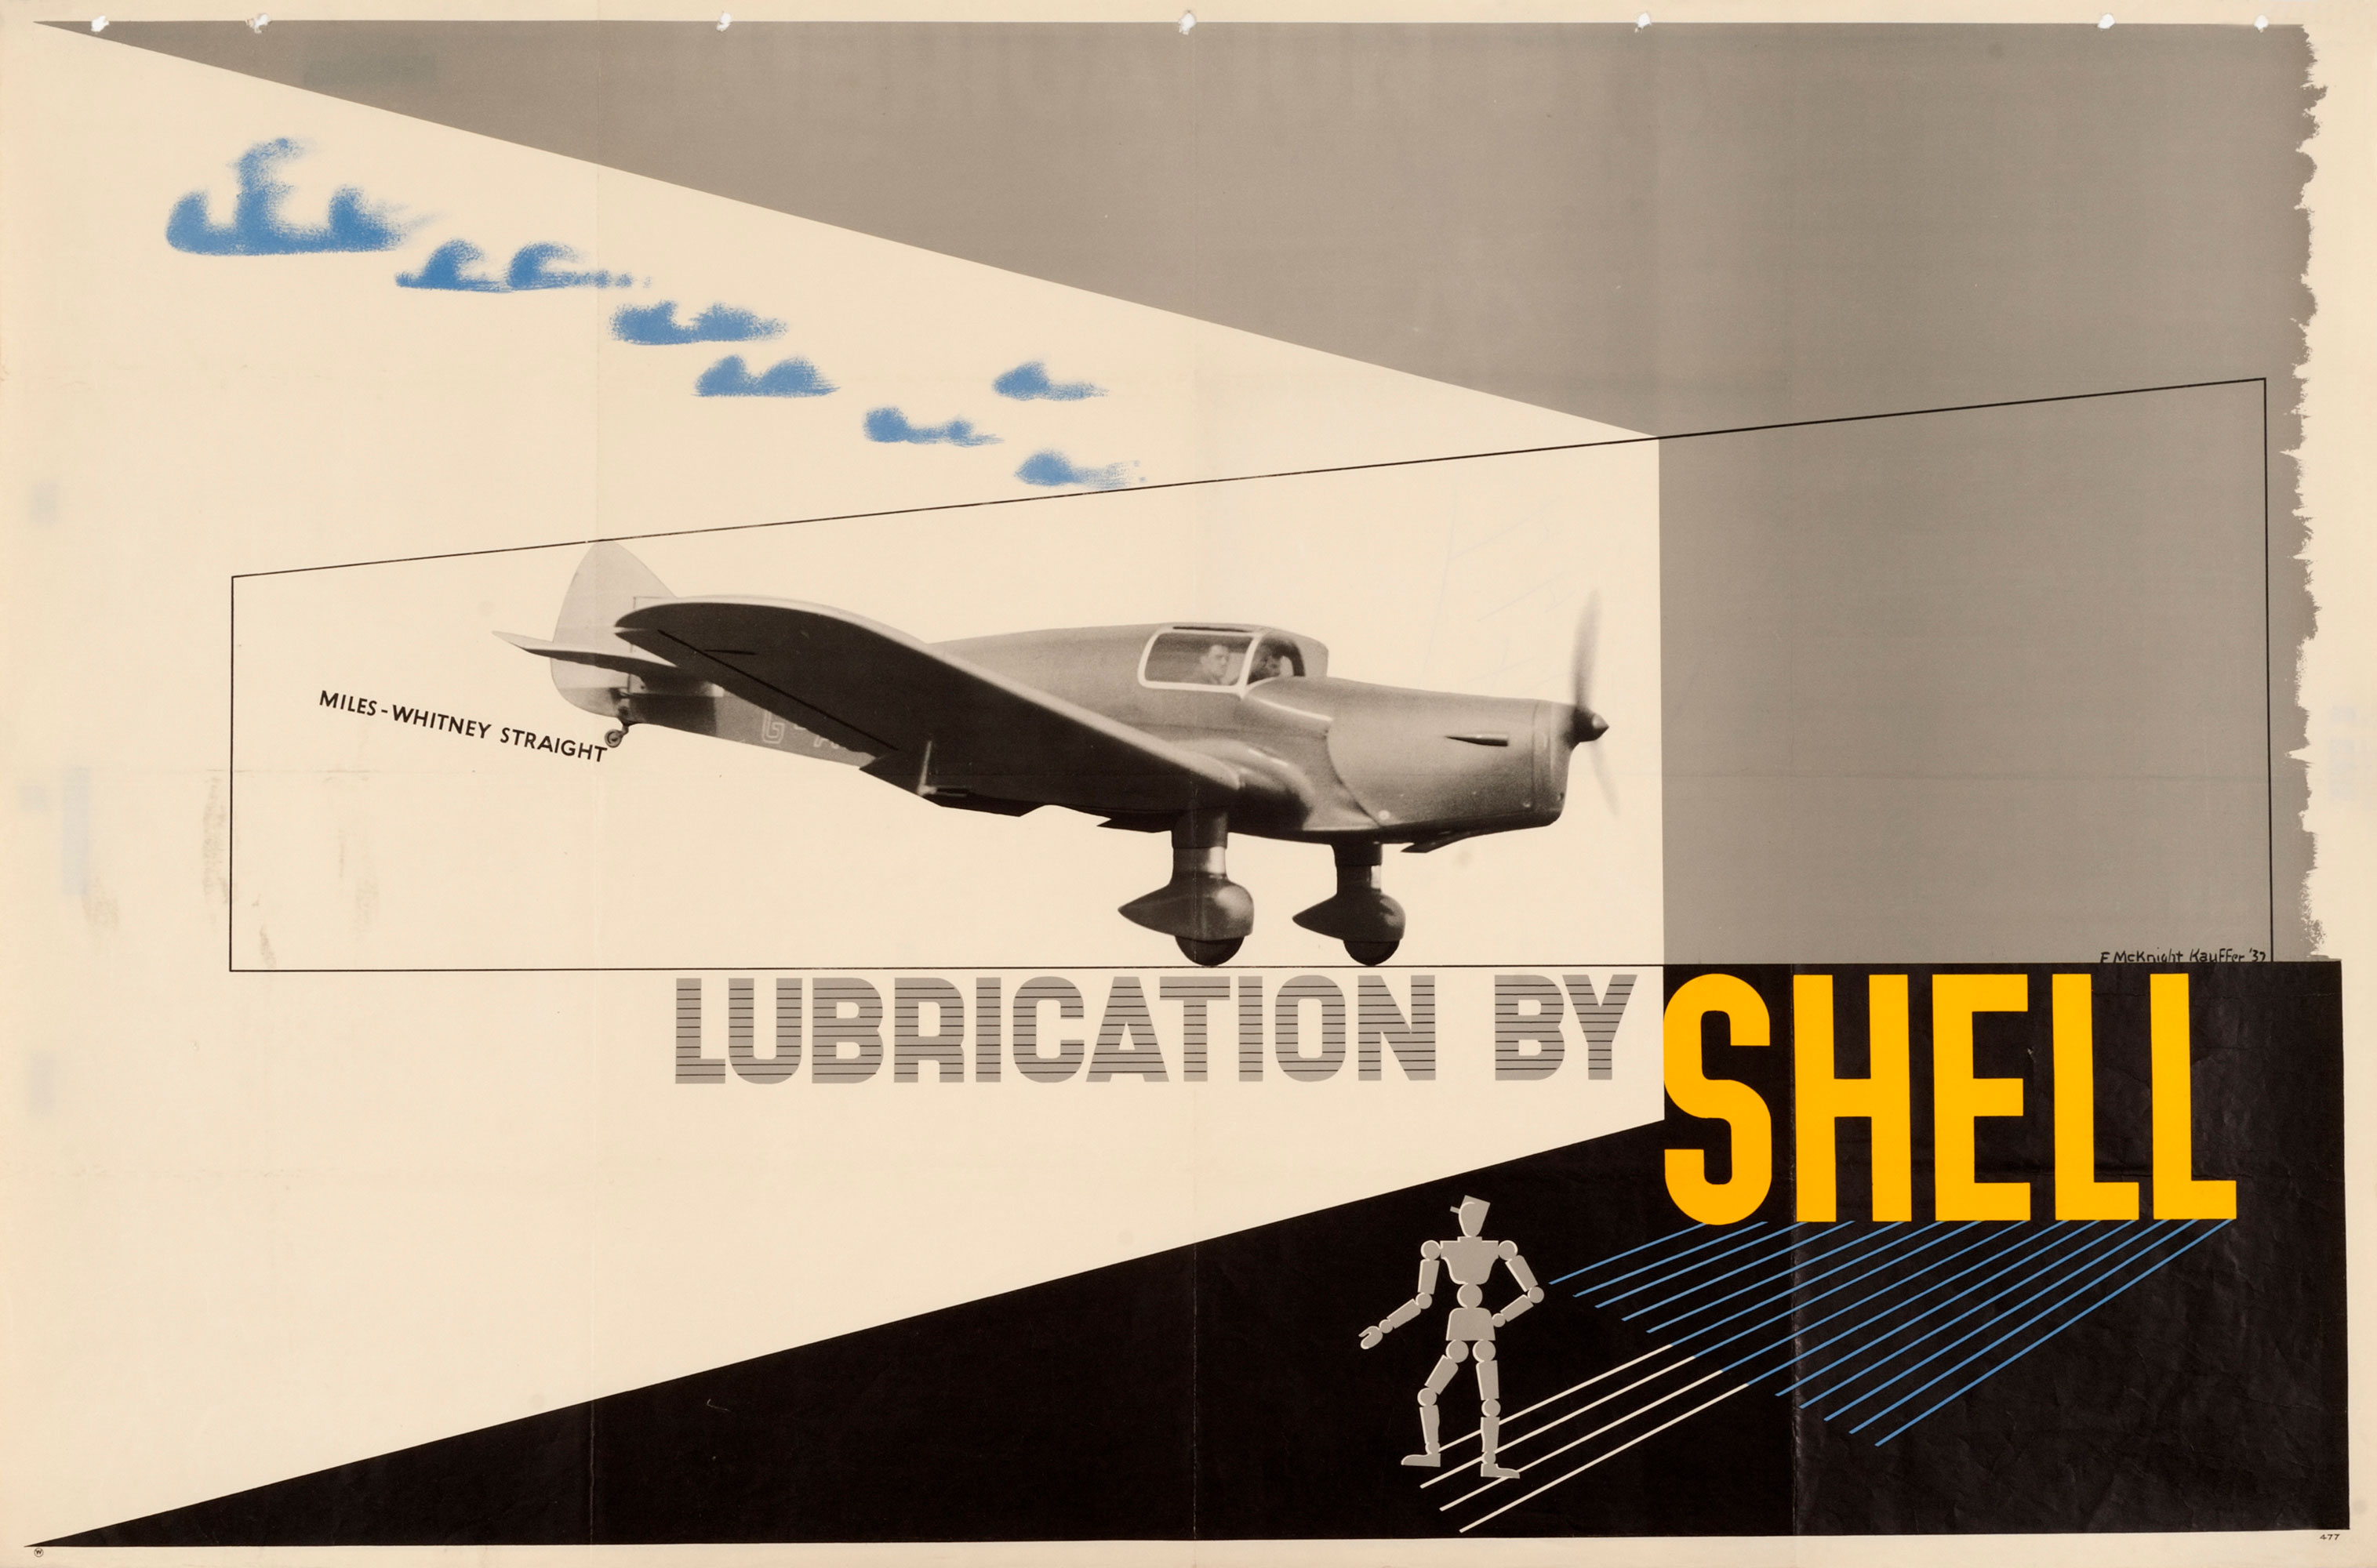 Shell poster number 477, Miles-Whitney Straight by Edward McKnight Kauffer. Photograph of the Miles-Whitney Straight monoplane with the text, 'Lubrication by Shell'.